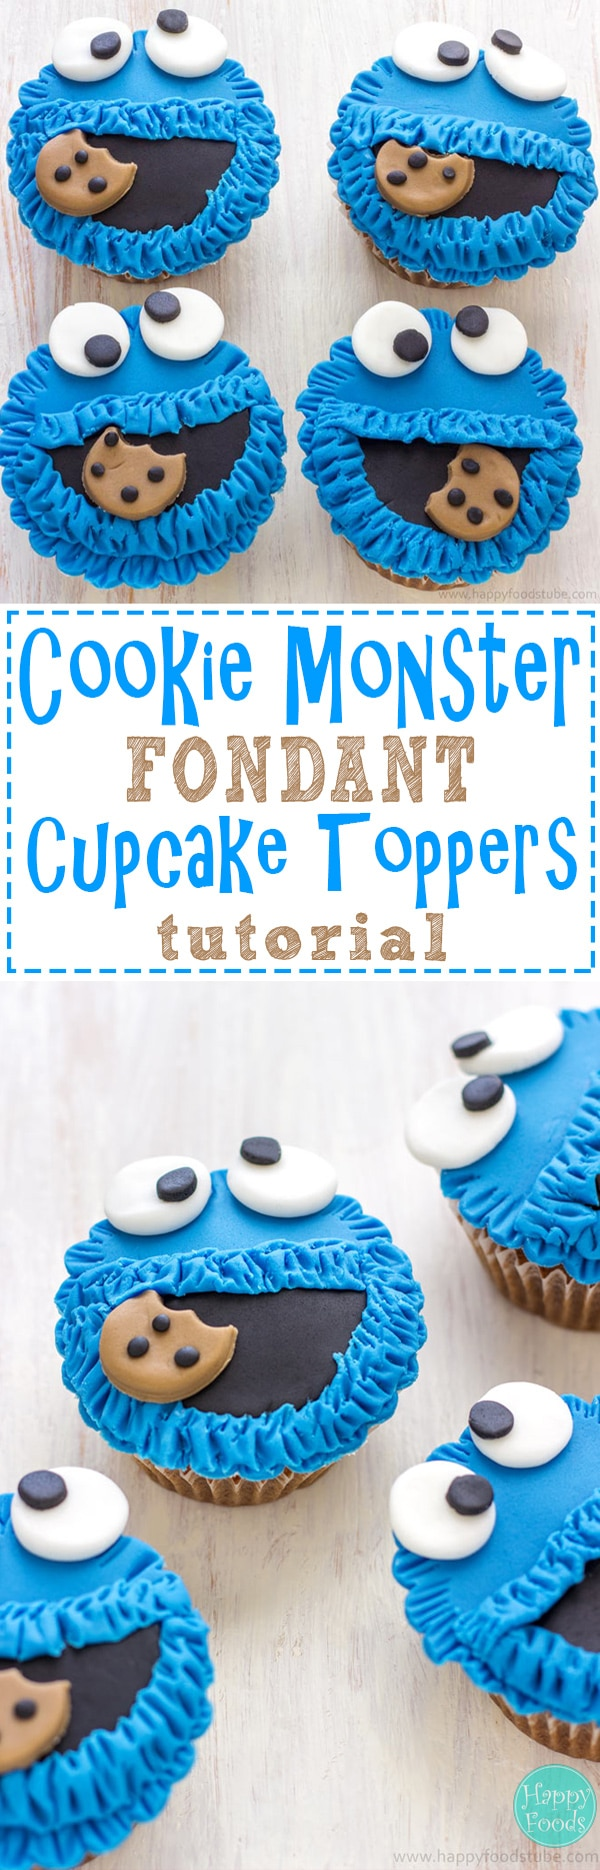 These Cookie Monster Fondant Cupcake Toppers are easy to make and are perfect for any Sesame Street party or Cookie Monster lovers! Cupcake / Cake decorating tutorial